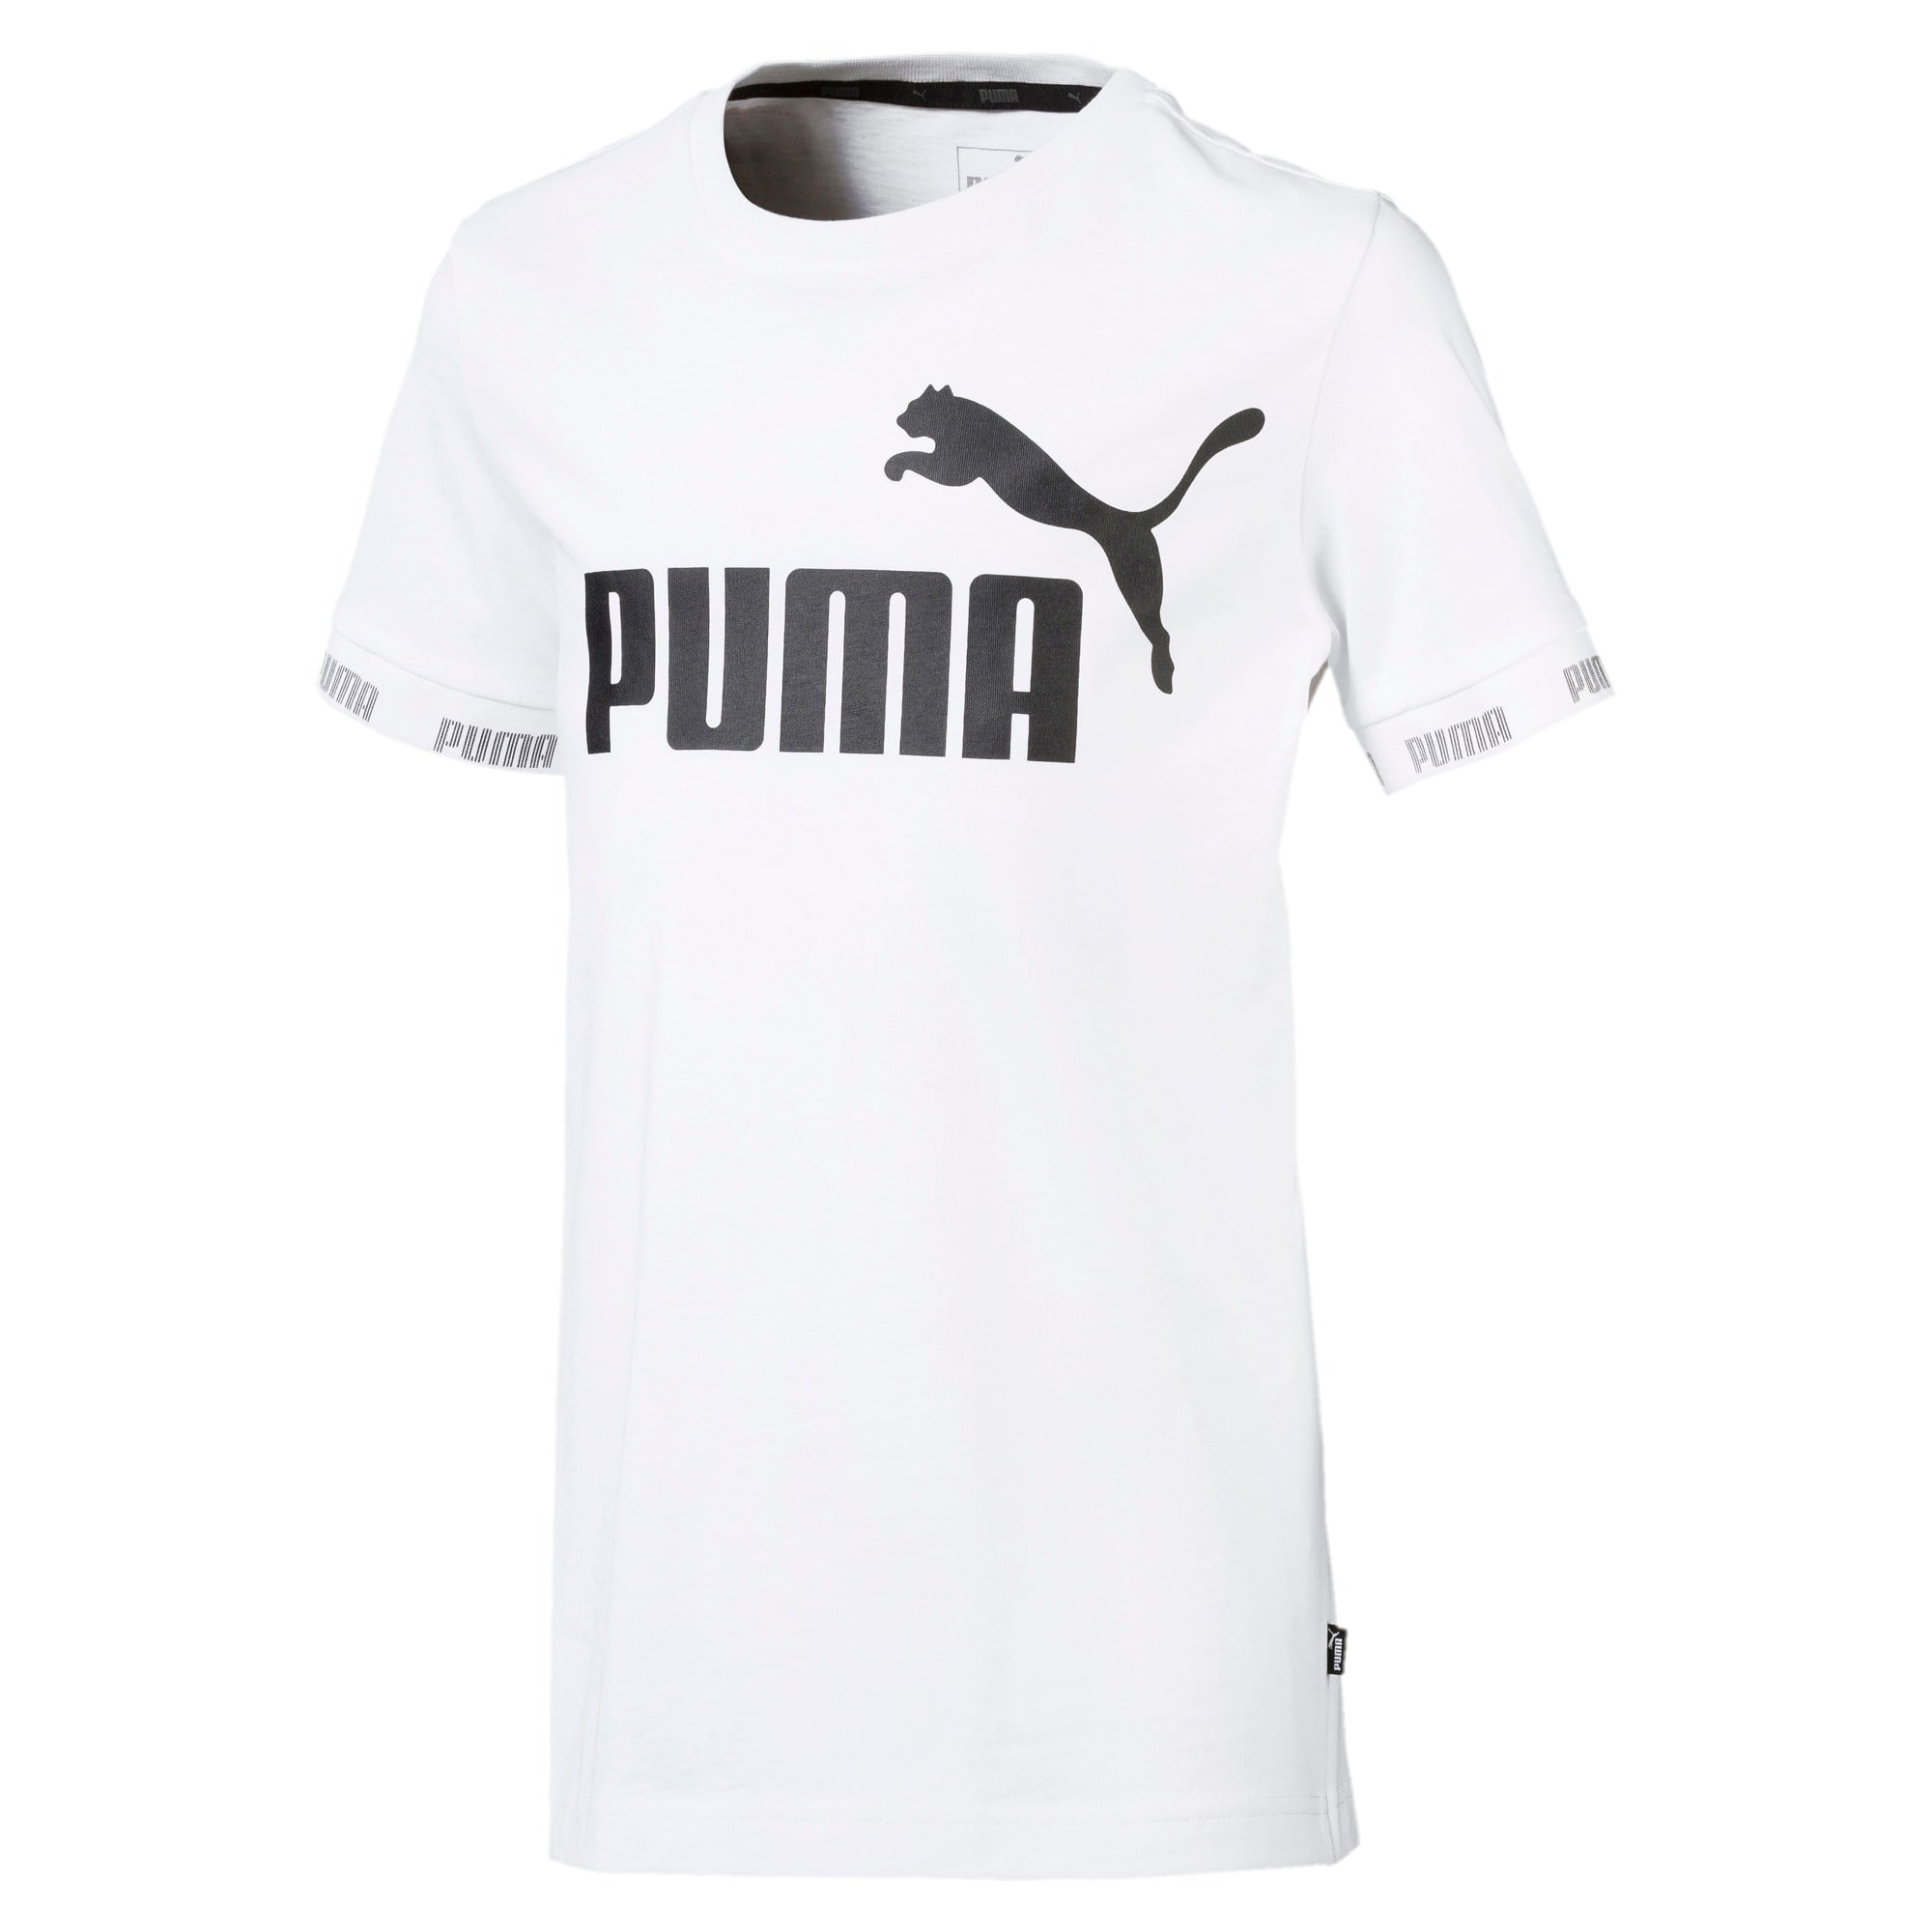 Thumbnail 1 of Amplified Jungen T-Shirt, Puma White, medium